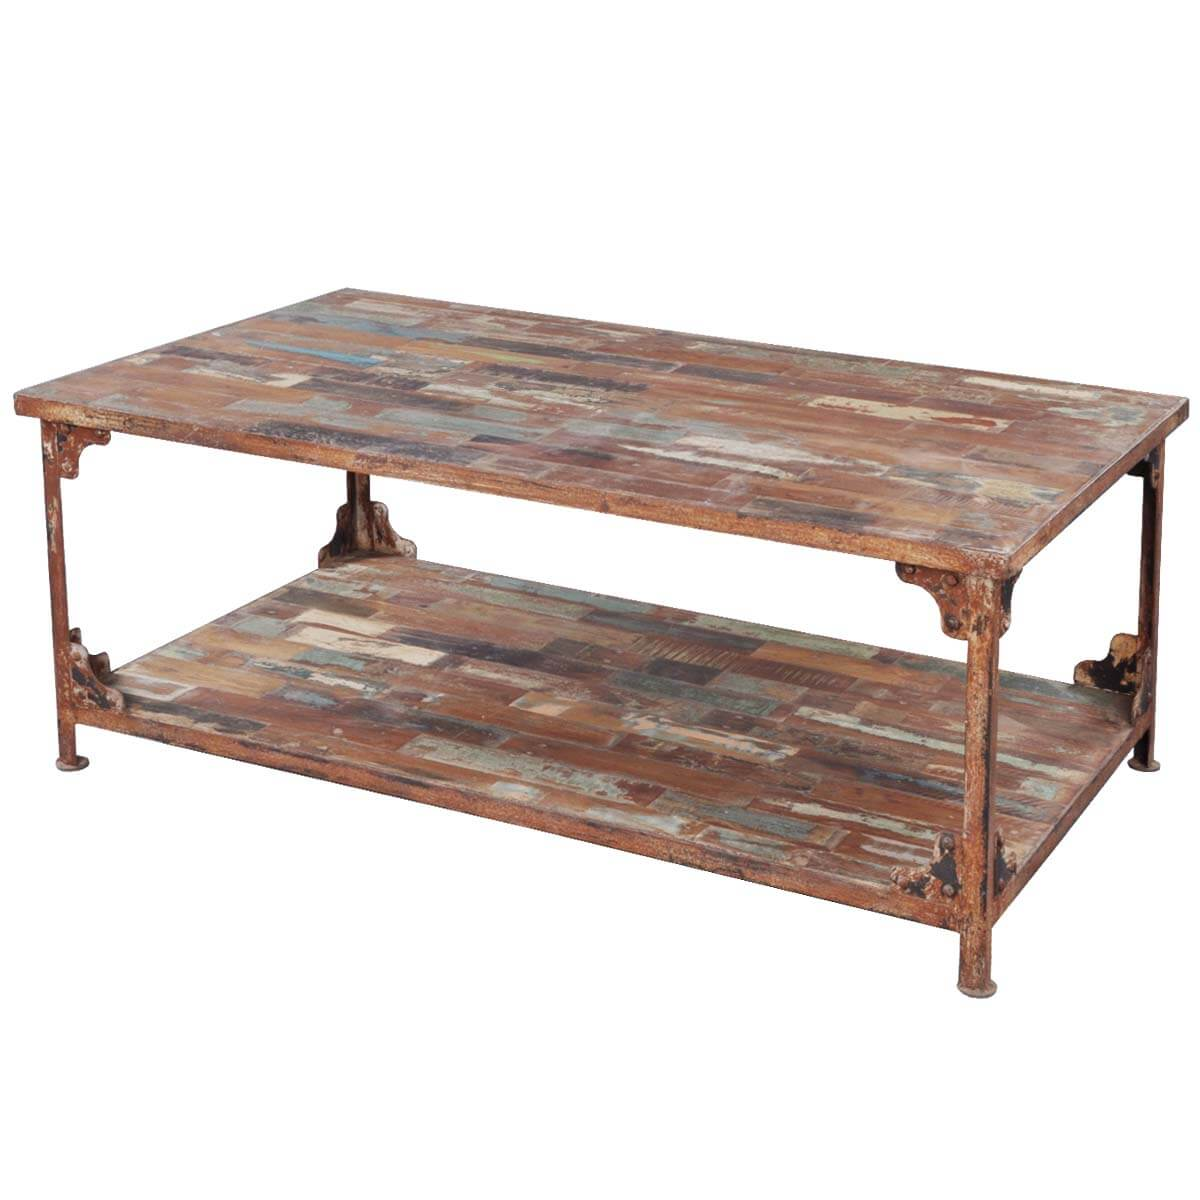 Distressed reclaimed wood industrial wrought iron rustic coffee table Rustic iron coffee table